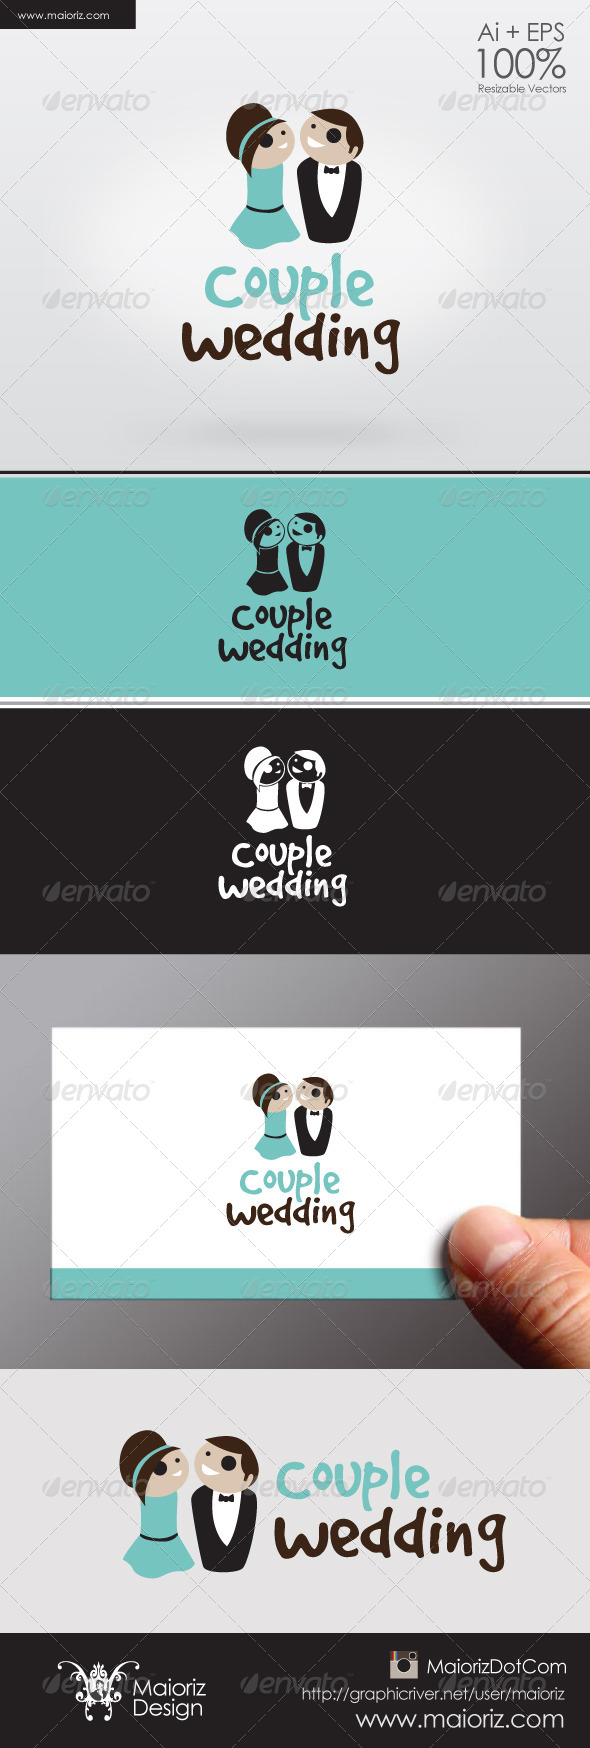 GraphicRiver Couple Wedding Logo 6321550